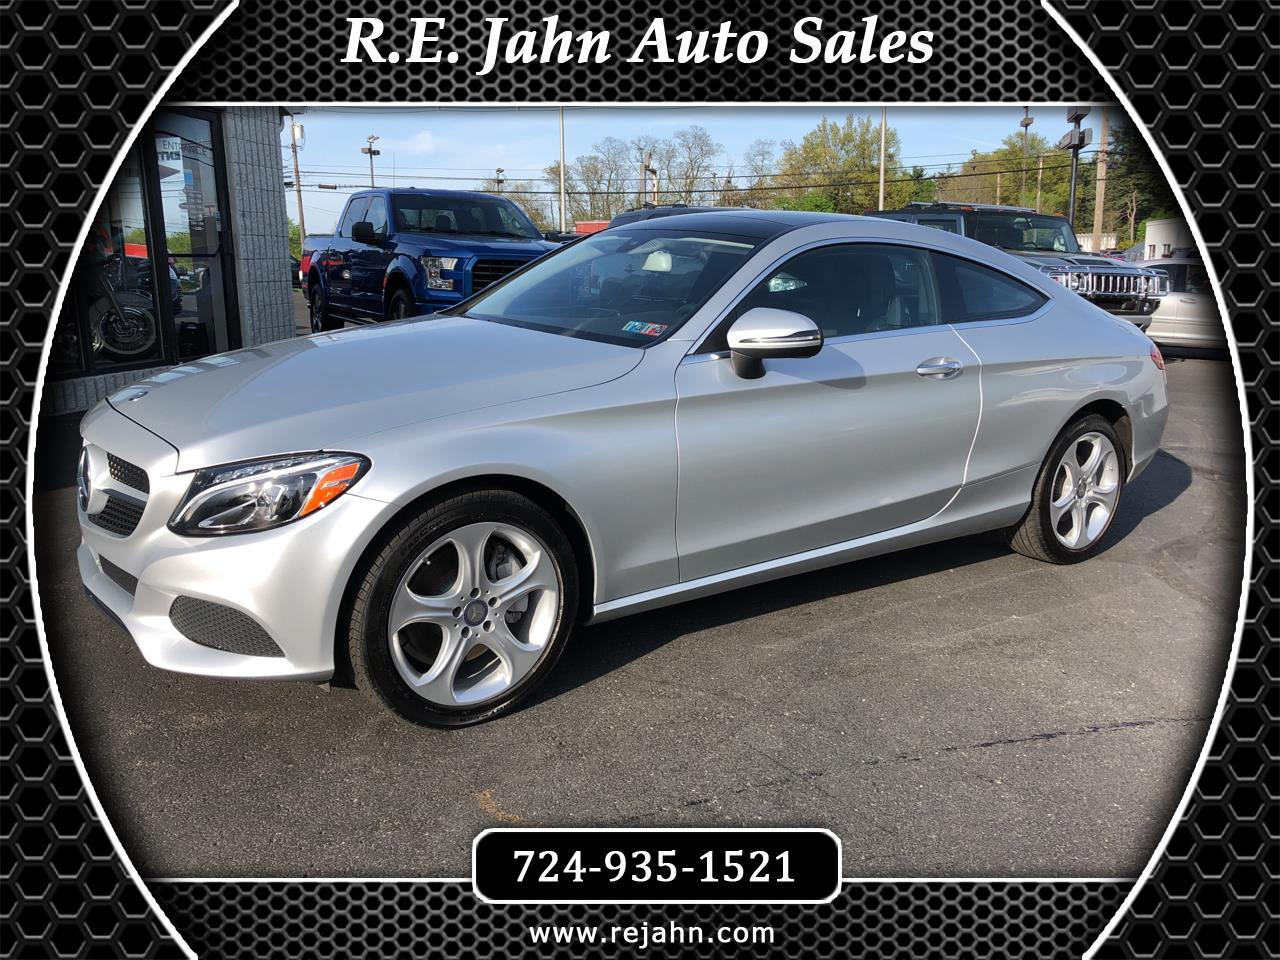 2017 Mercedes-Benz C-Class C 300 4MATIC Coupe